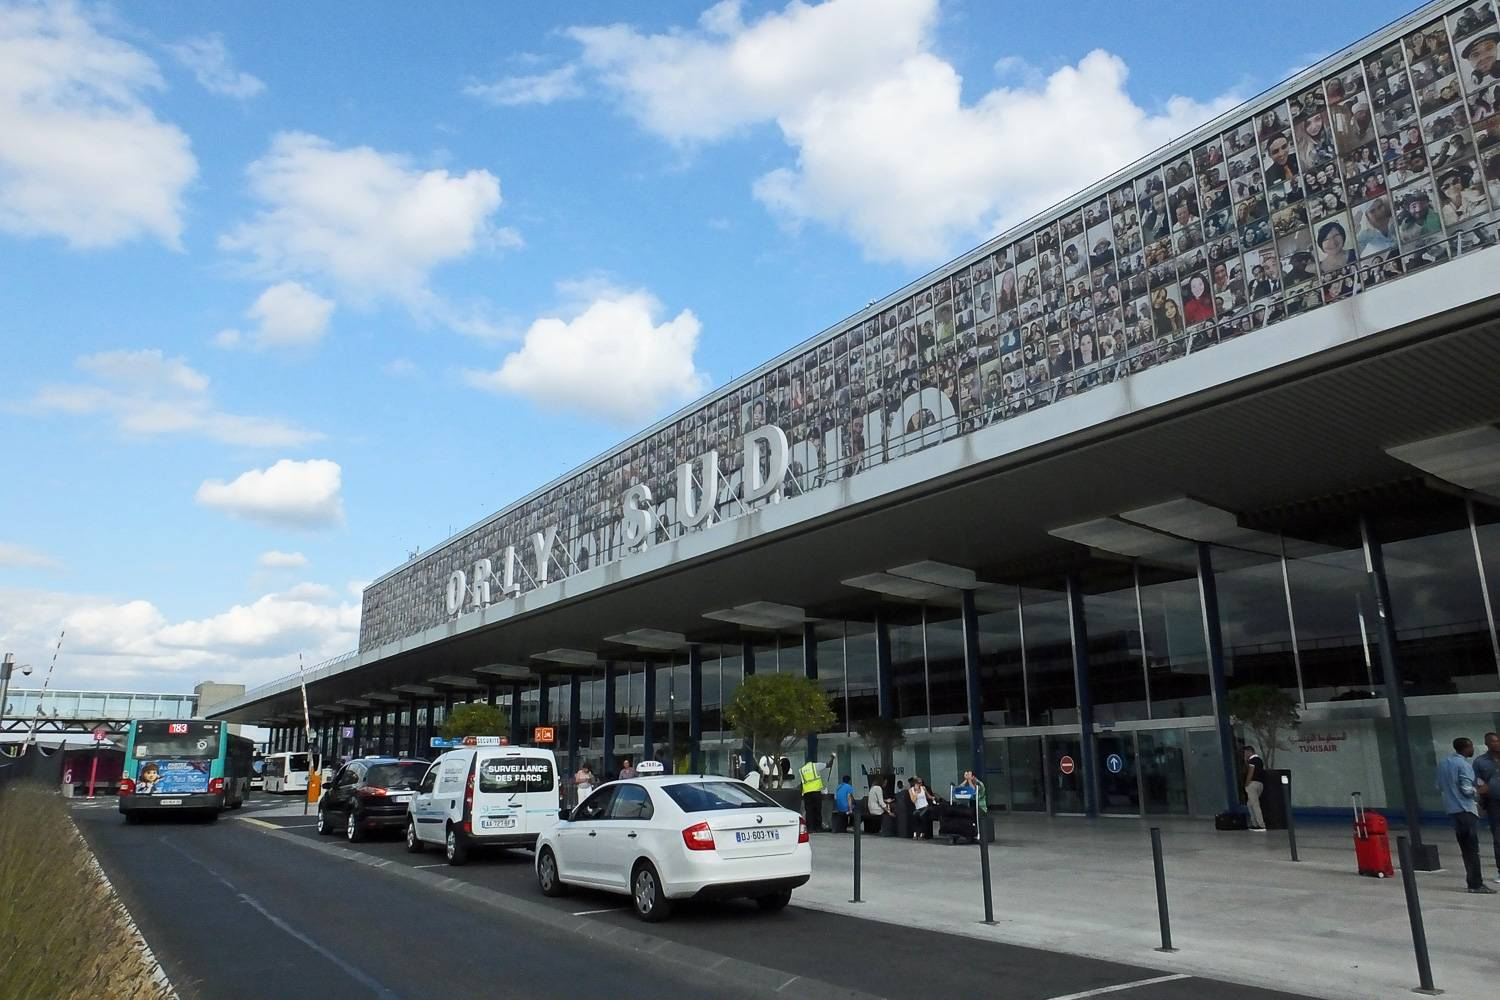 Image of the exterior of Orly Airport's Terminal 4 with an Orlybus at the curb.